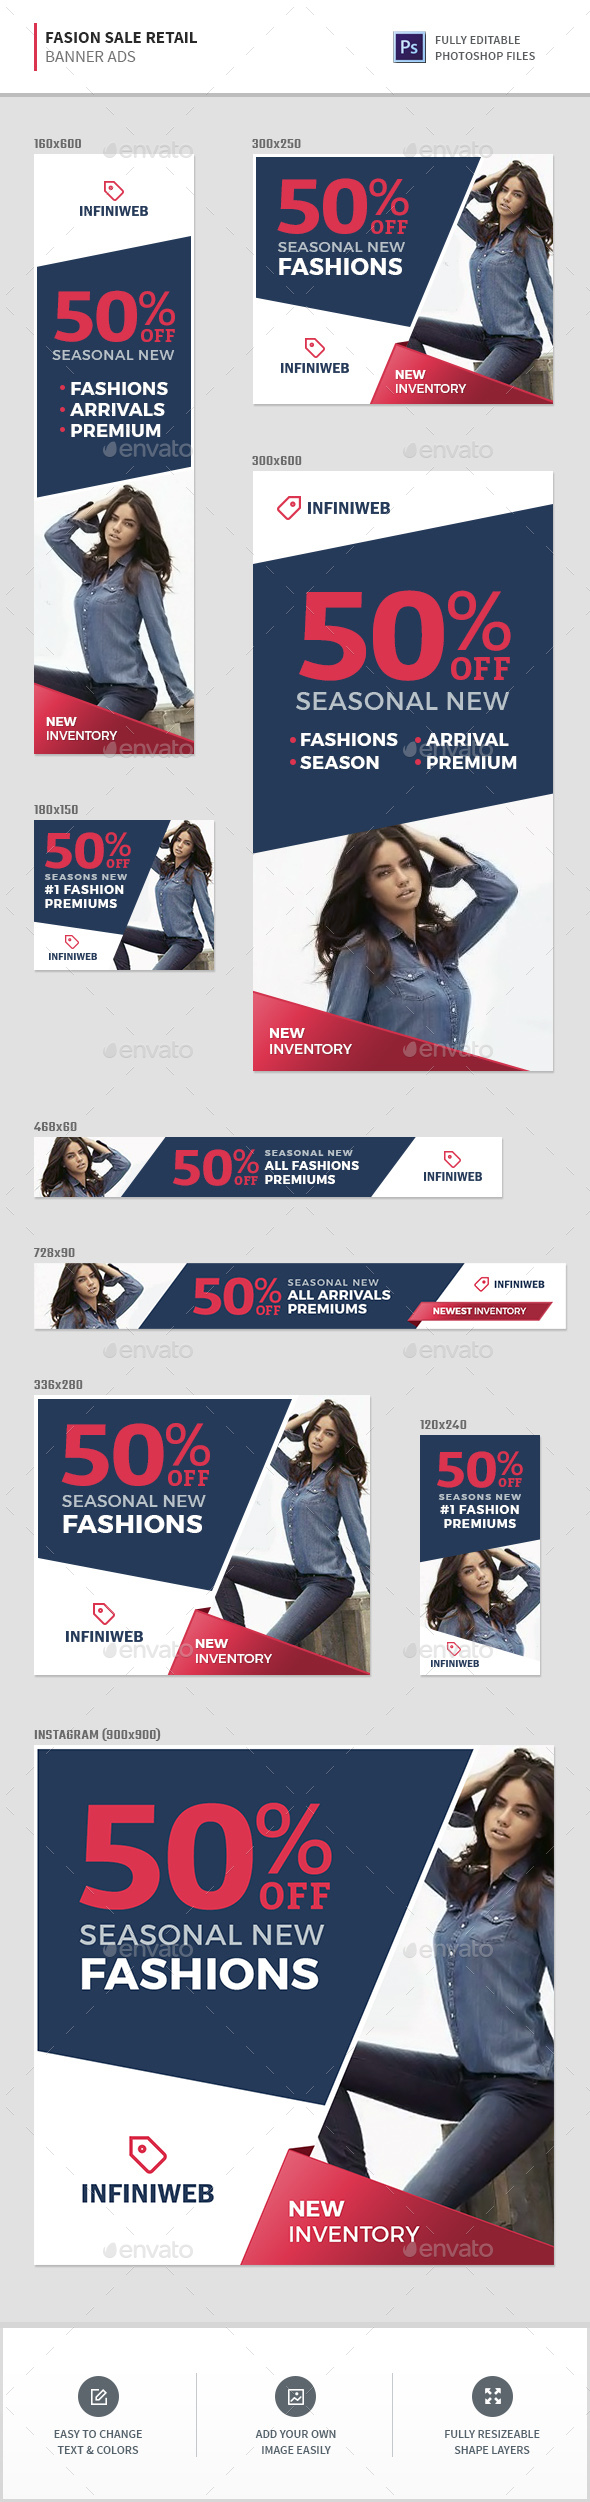 Fashion Sale Retail Banners - Banners & Ads Web Elements